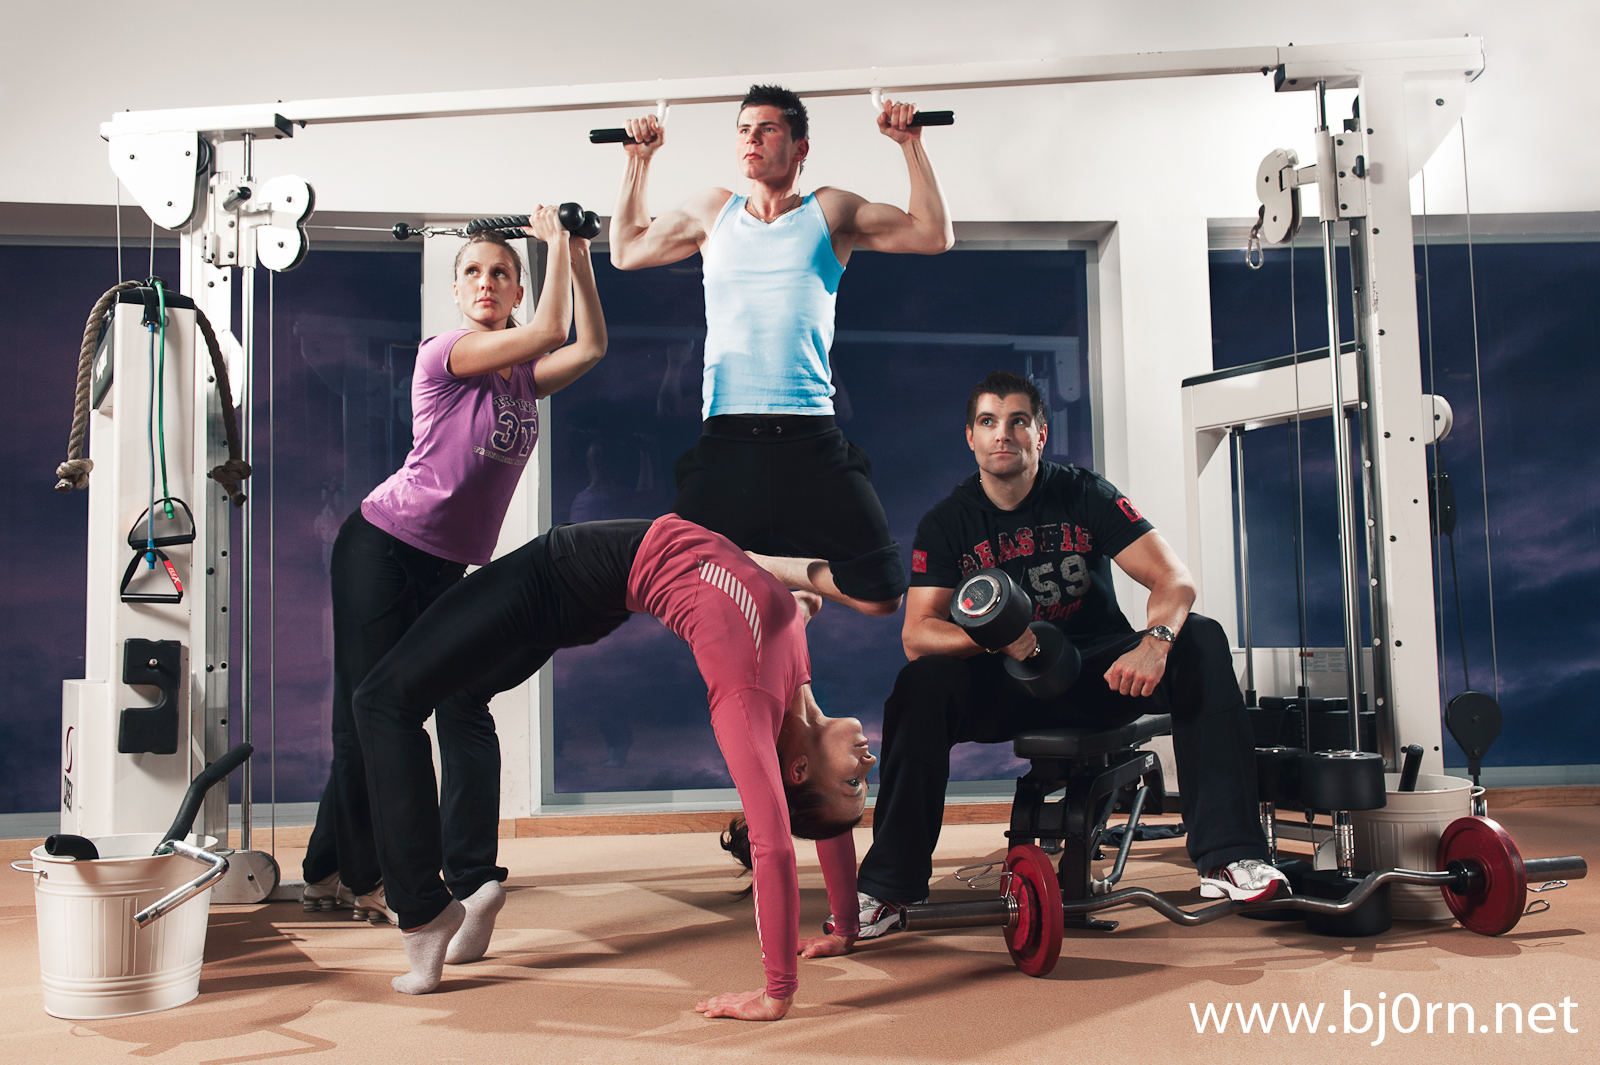 photo:Bjørn Christiansen, models: Ida Carin DAhl, Ole Anders Dahl, Jan Arild Grønskag and Aina Asbjørnsen, 3T - Gym Instructors